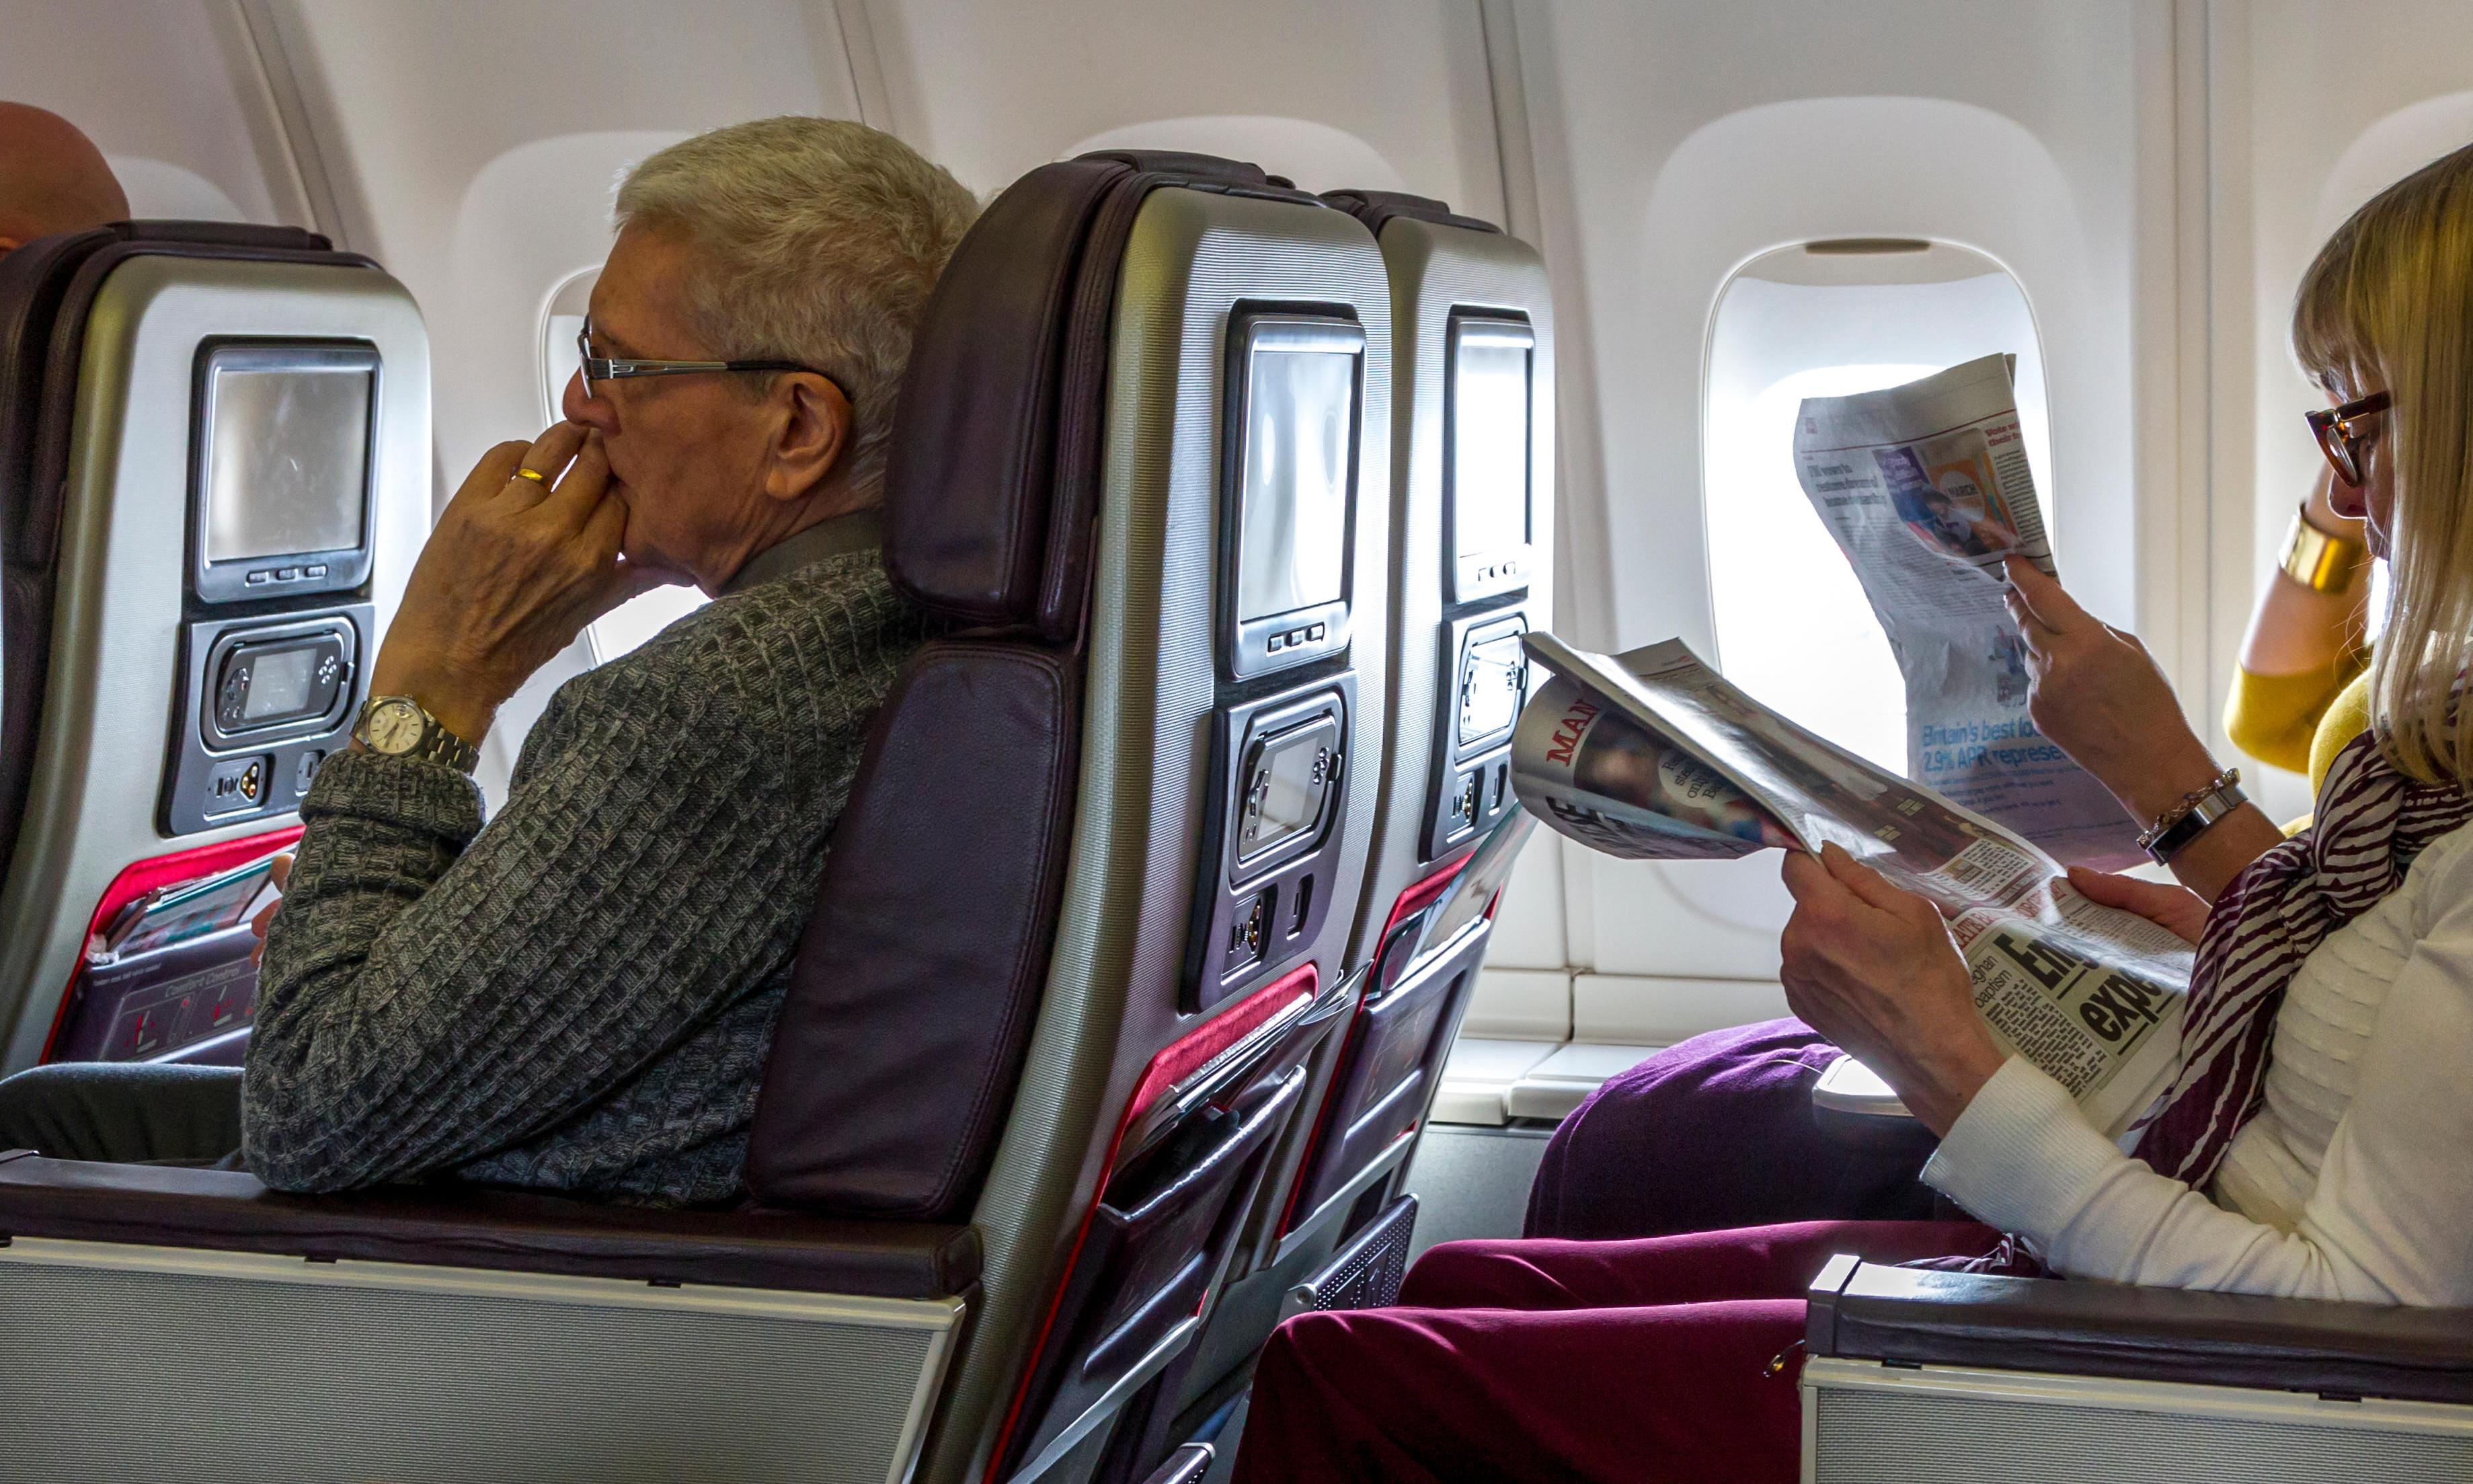 Premium economy: is it worth the extra expense?